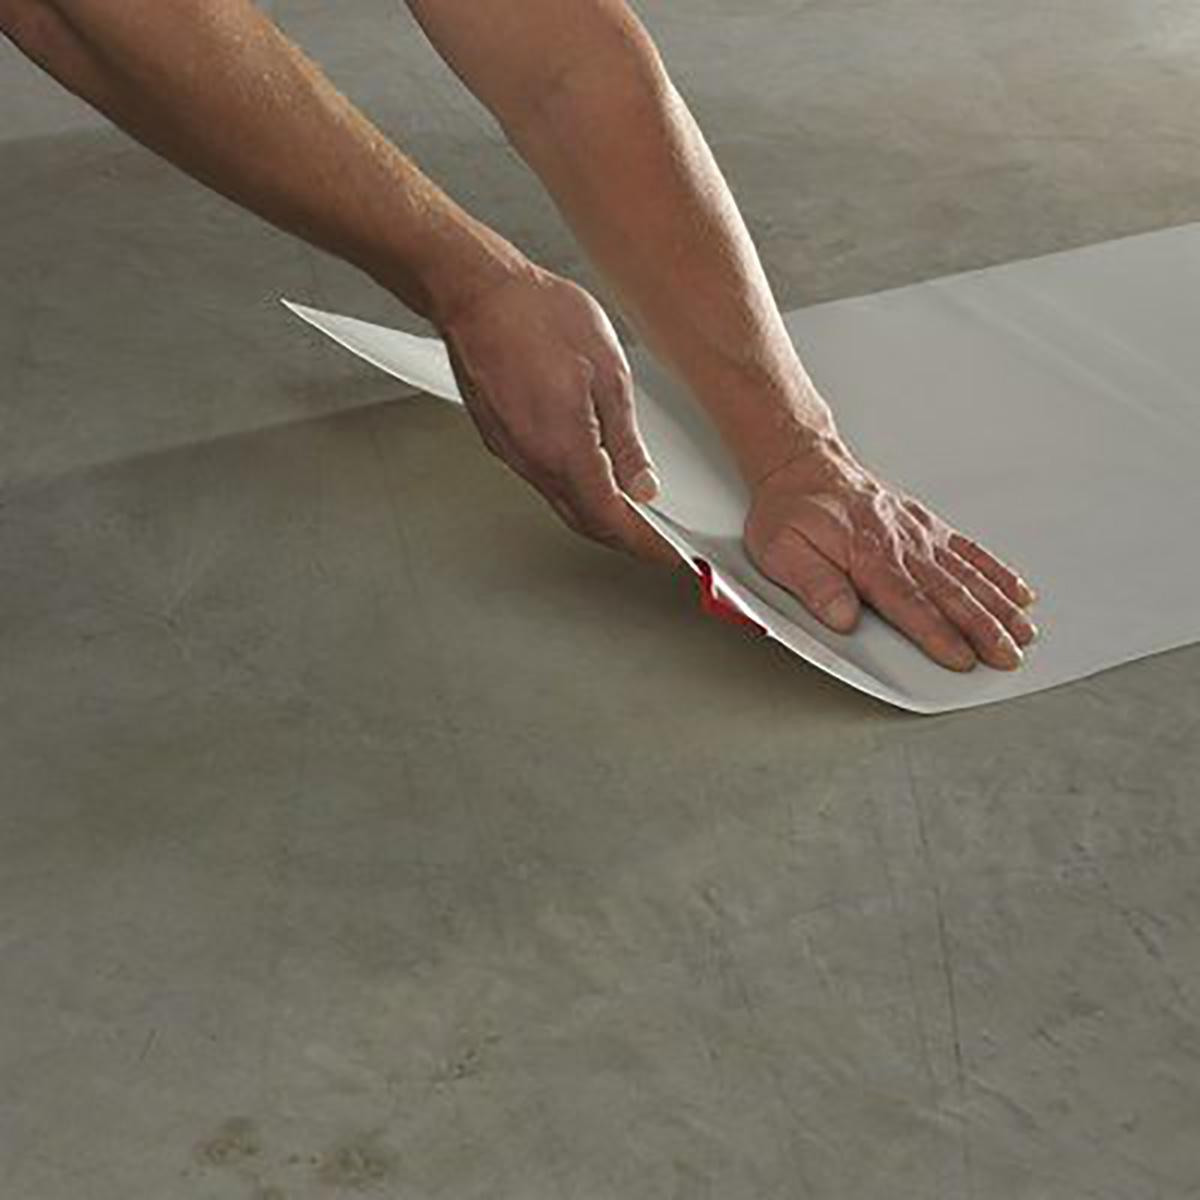 3M Clean-Walk Mat 5830 White, 18 in x 36 in, 30 sheets per Mat